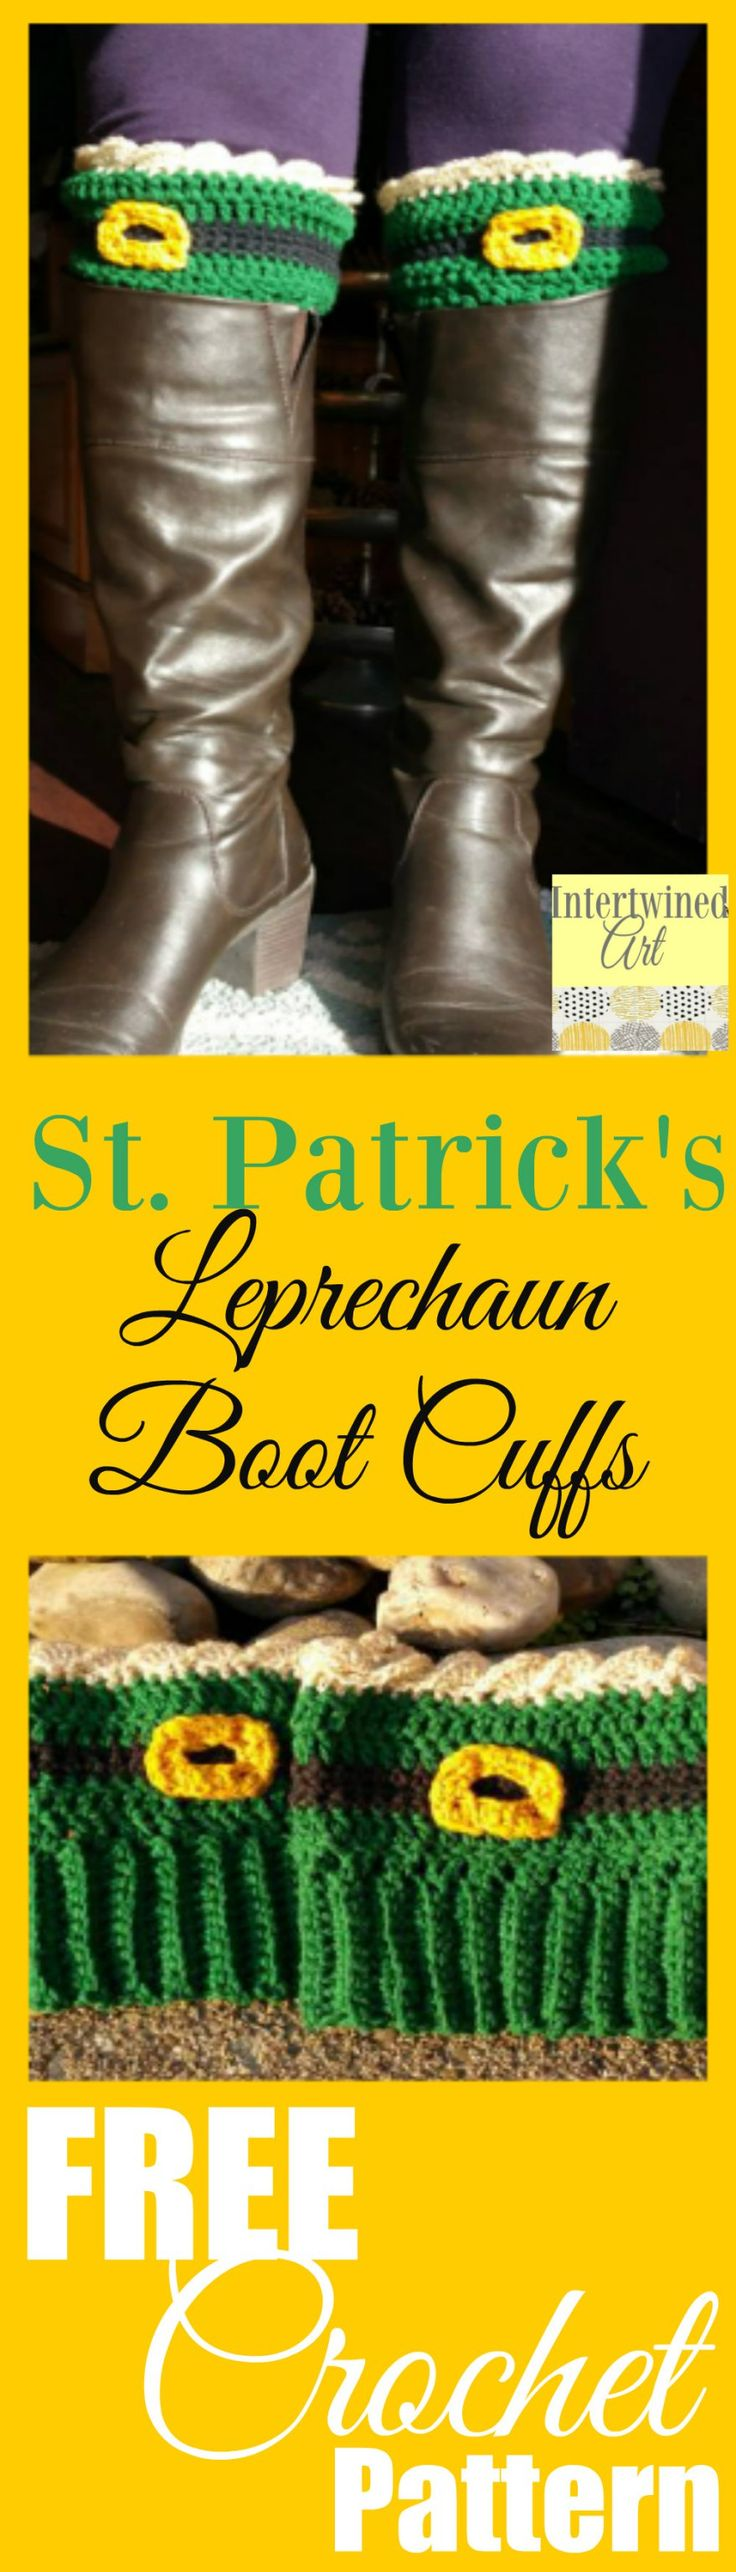 St. Patrick's Day Leprechaun Crochet Boot Cuffs Free Pattern. Button closure, so they are adjustable for most sizes!